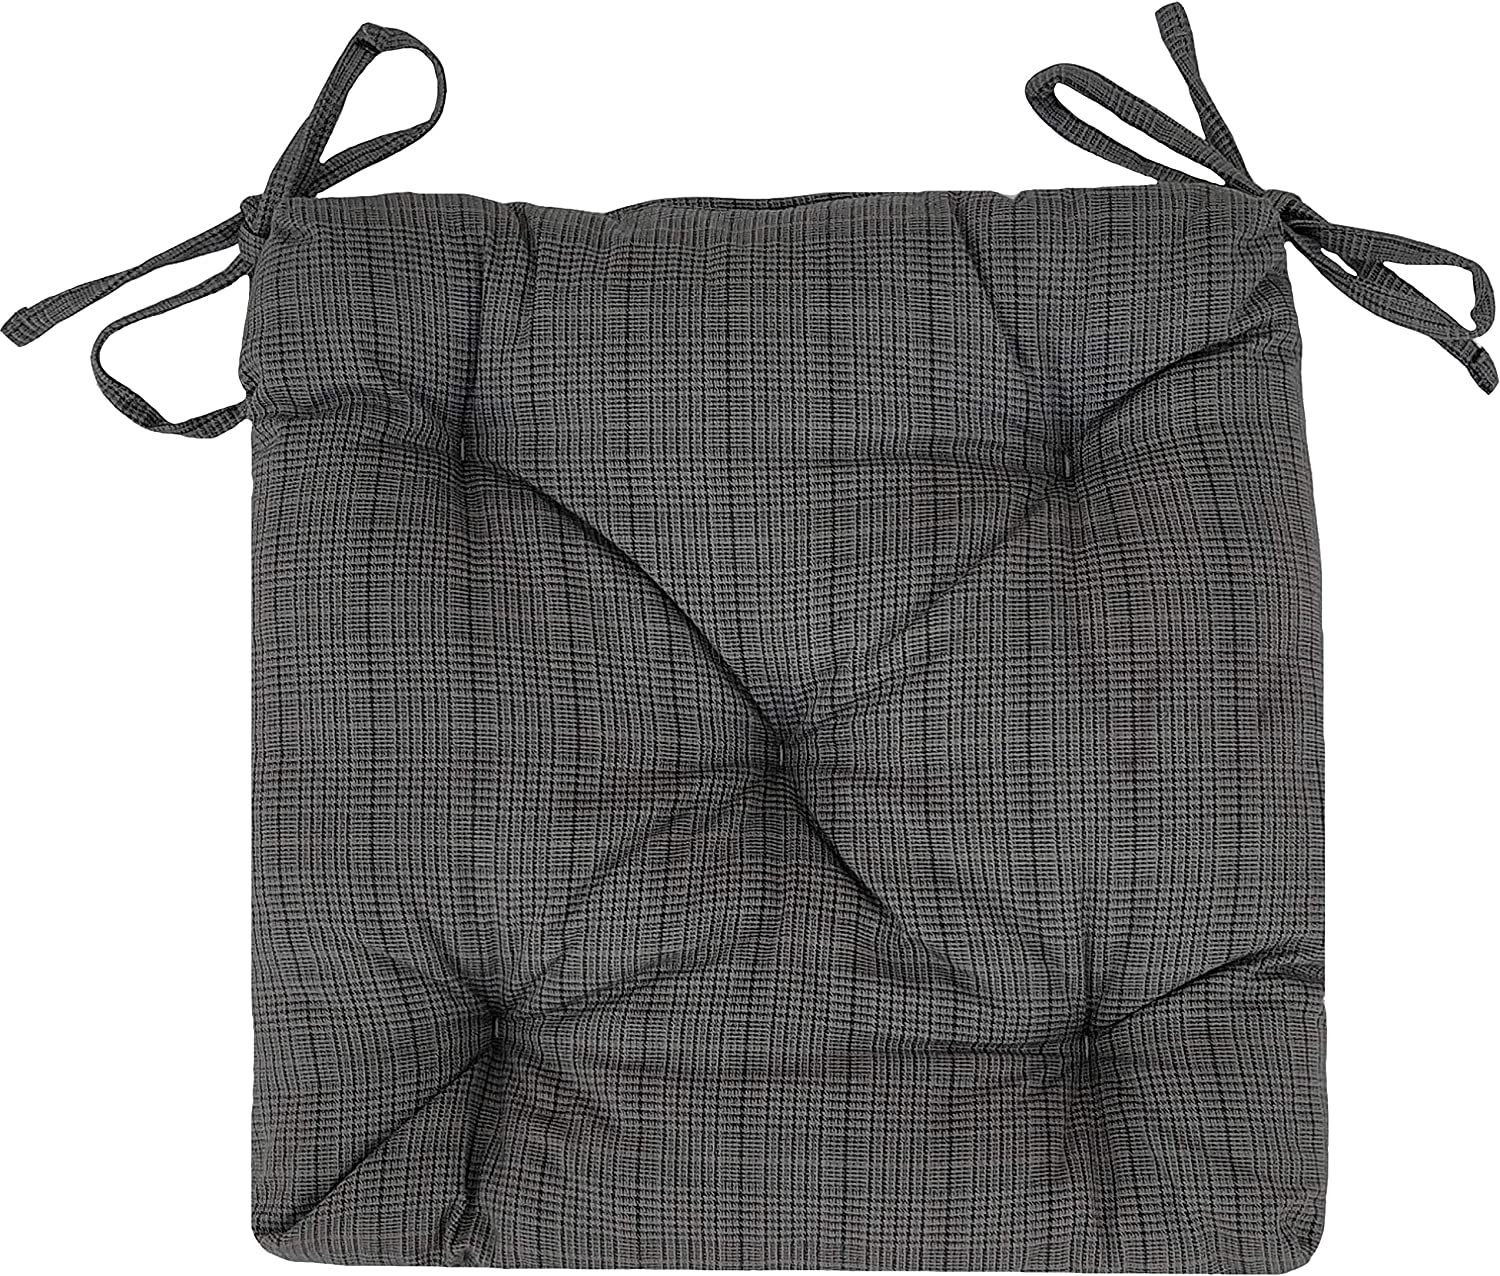 Dining Chair Seat MF International Chair Pad 41 x 41 cm // 16 x 16 Garden Hypoallergenic Tufted With Ties Durable /& Washable Chair Cushion Black